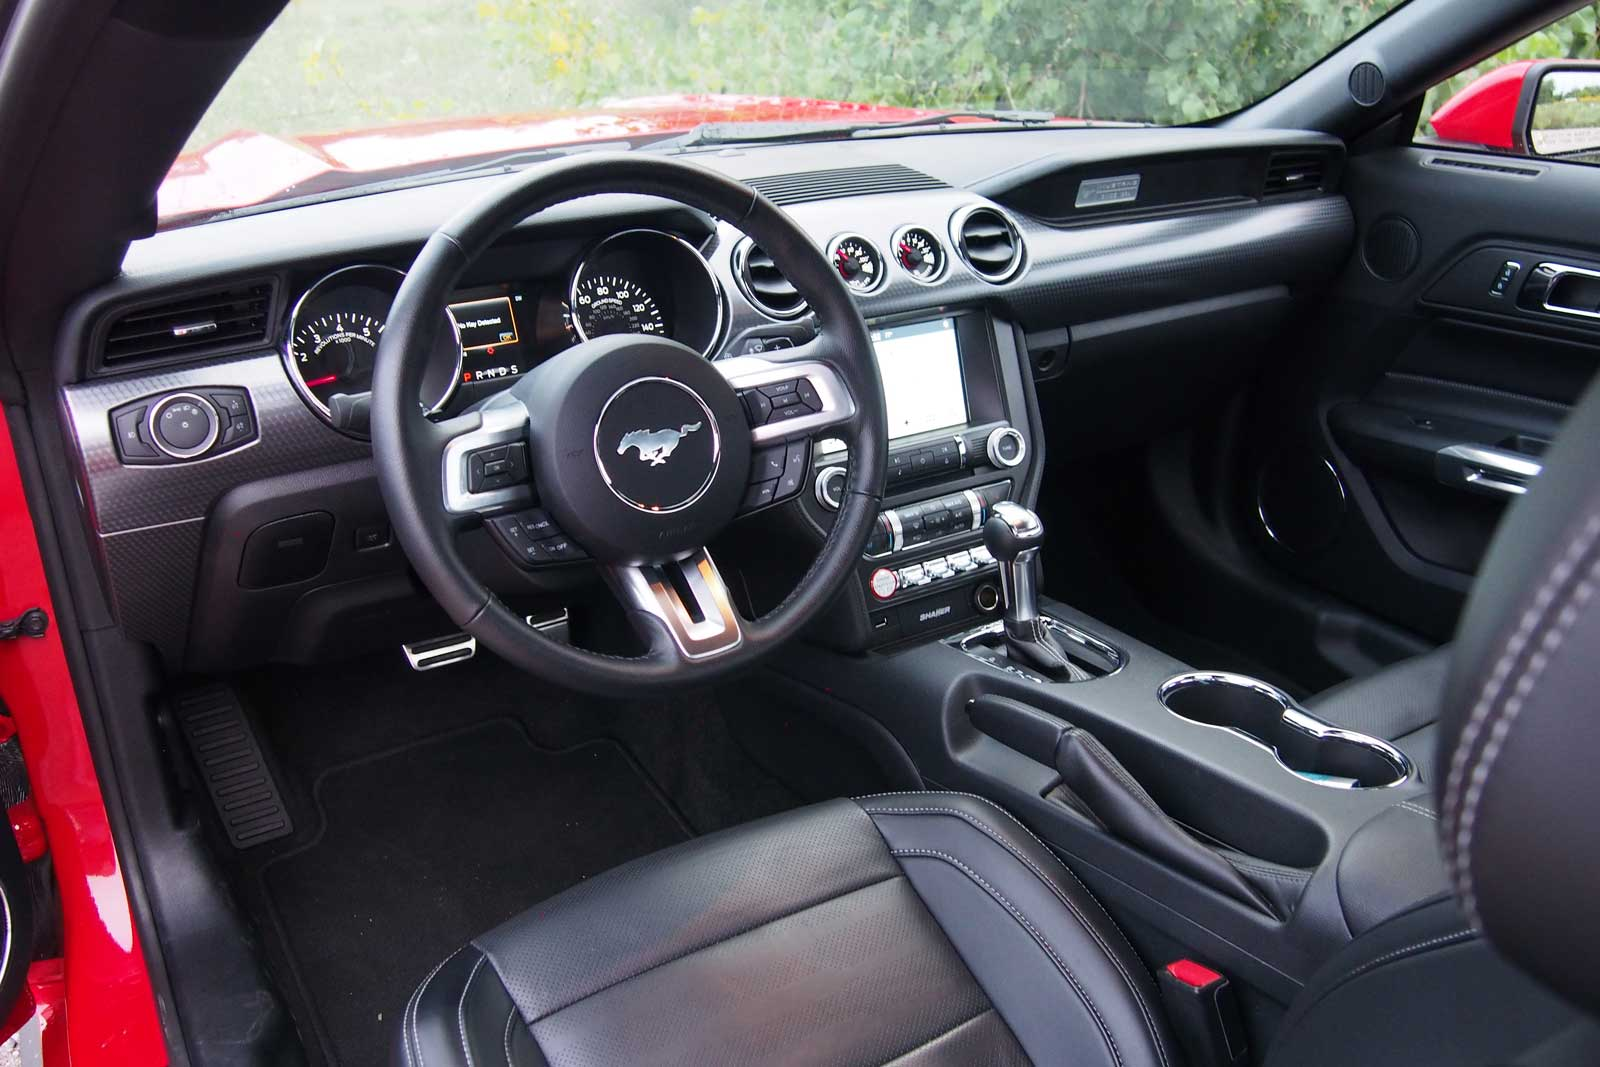 Ford Mustang 2.3 Ecoboost Interior